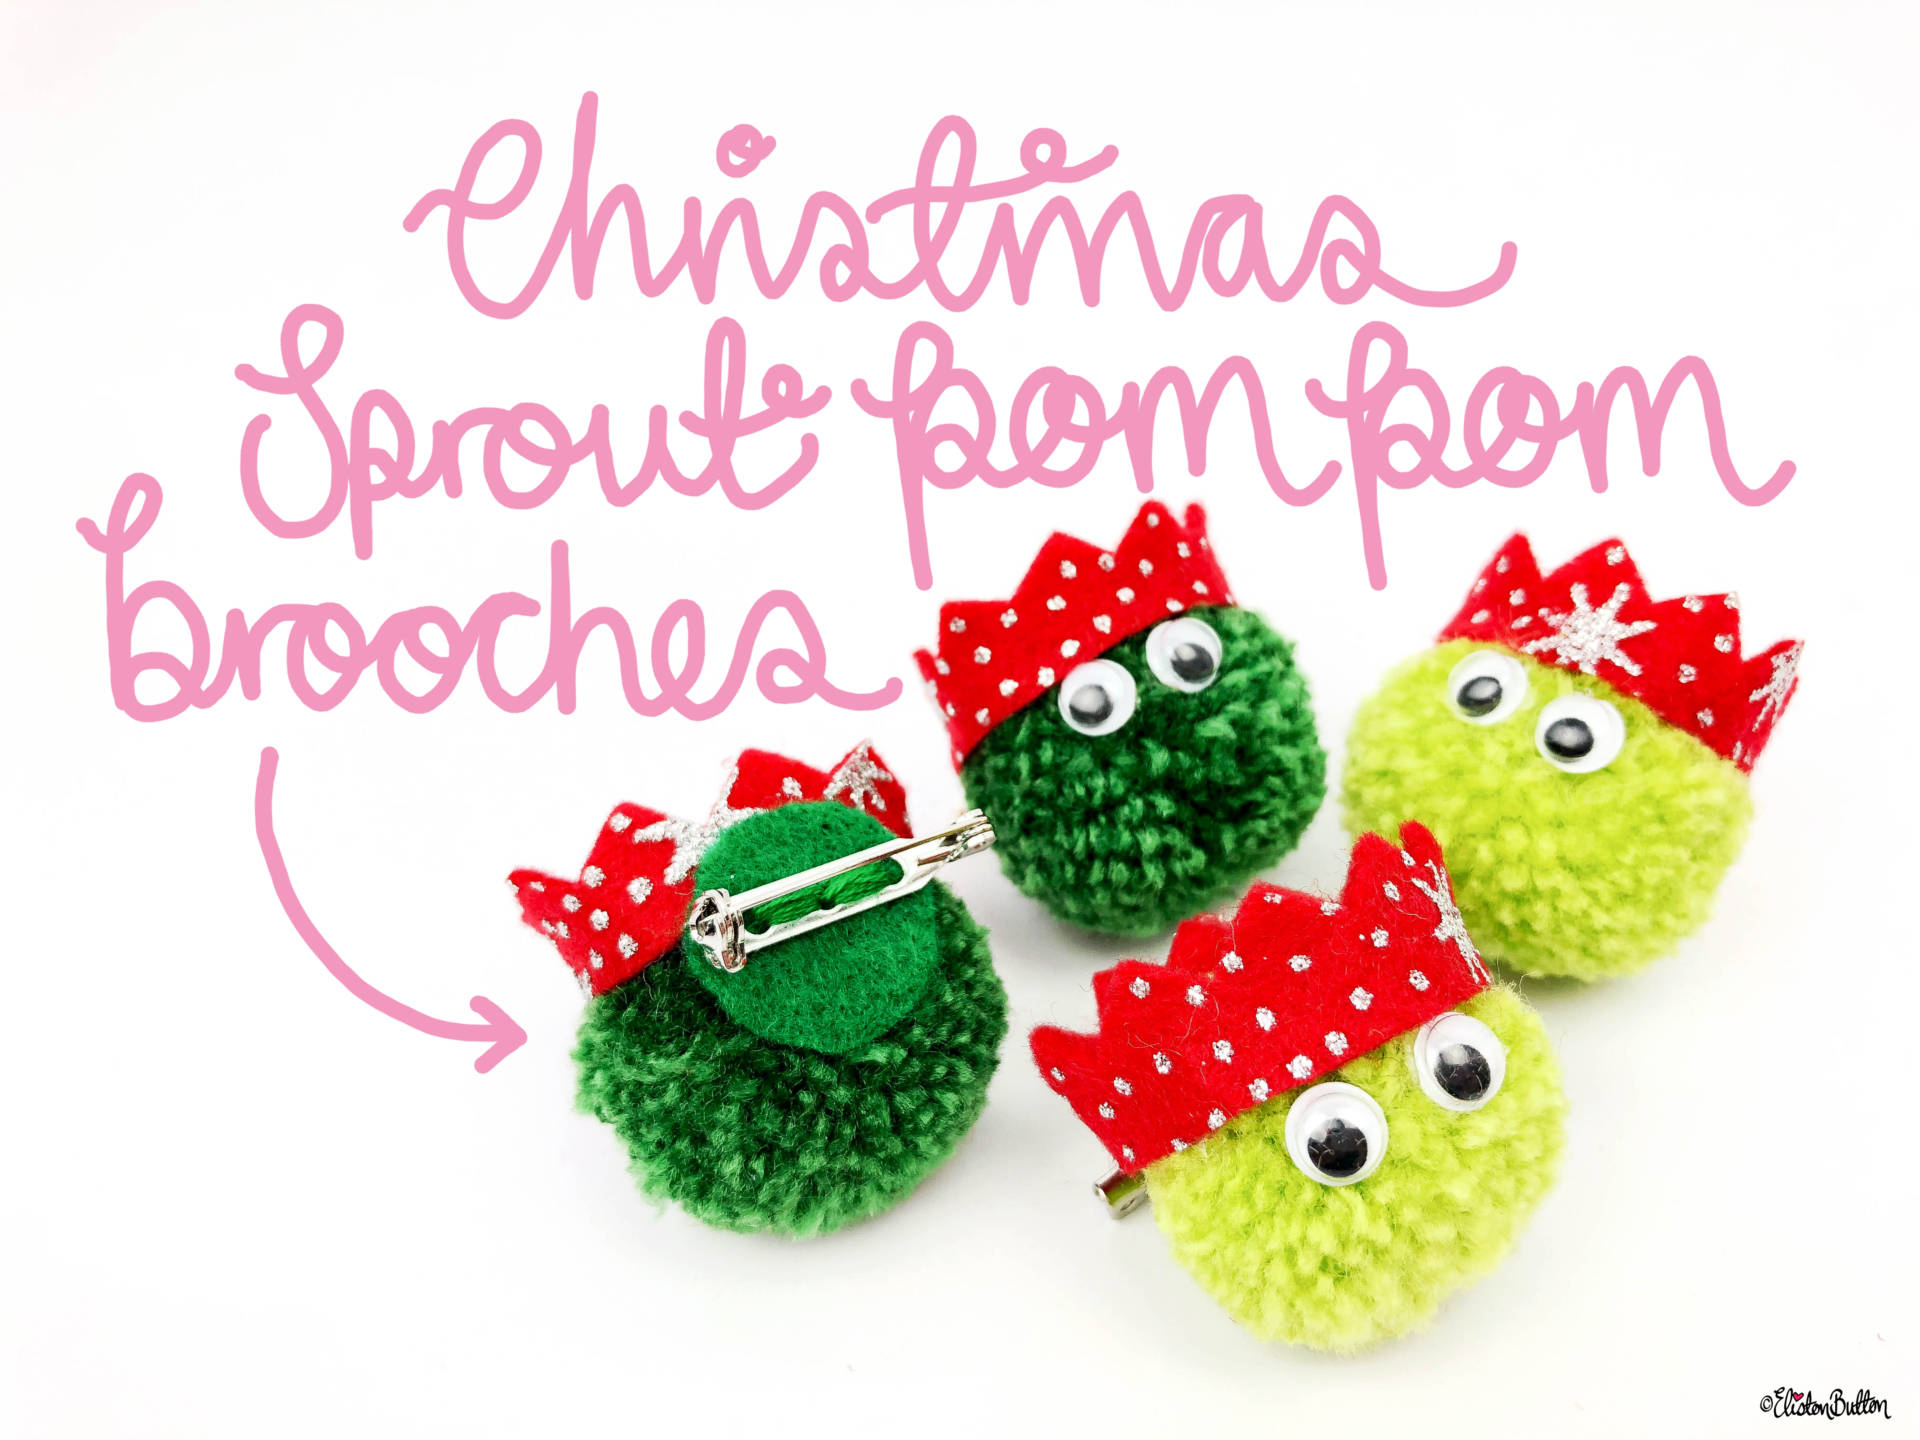 Christmas Sprout Pom Pom Brooches by Eliston Button - Christmas Sprout Pom Pom Brooches! at www.elistonbutton.com - Eliston Button - That Crafty Kid – Art, Design, Craft & Adventure.